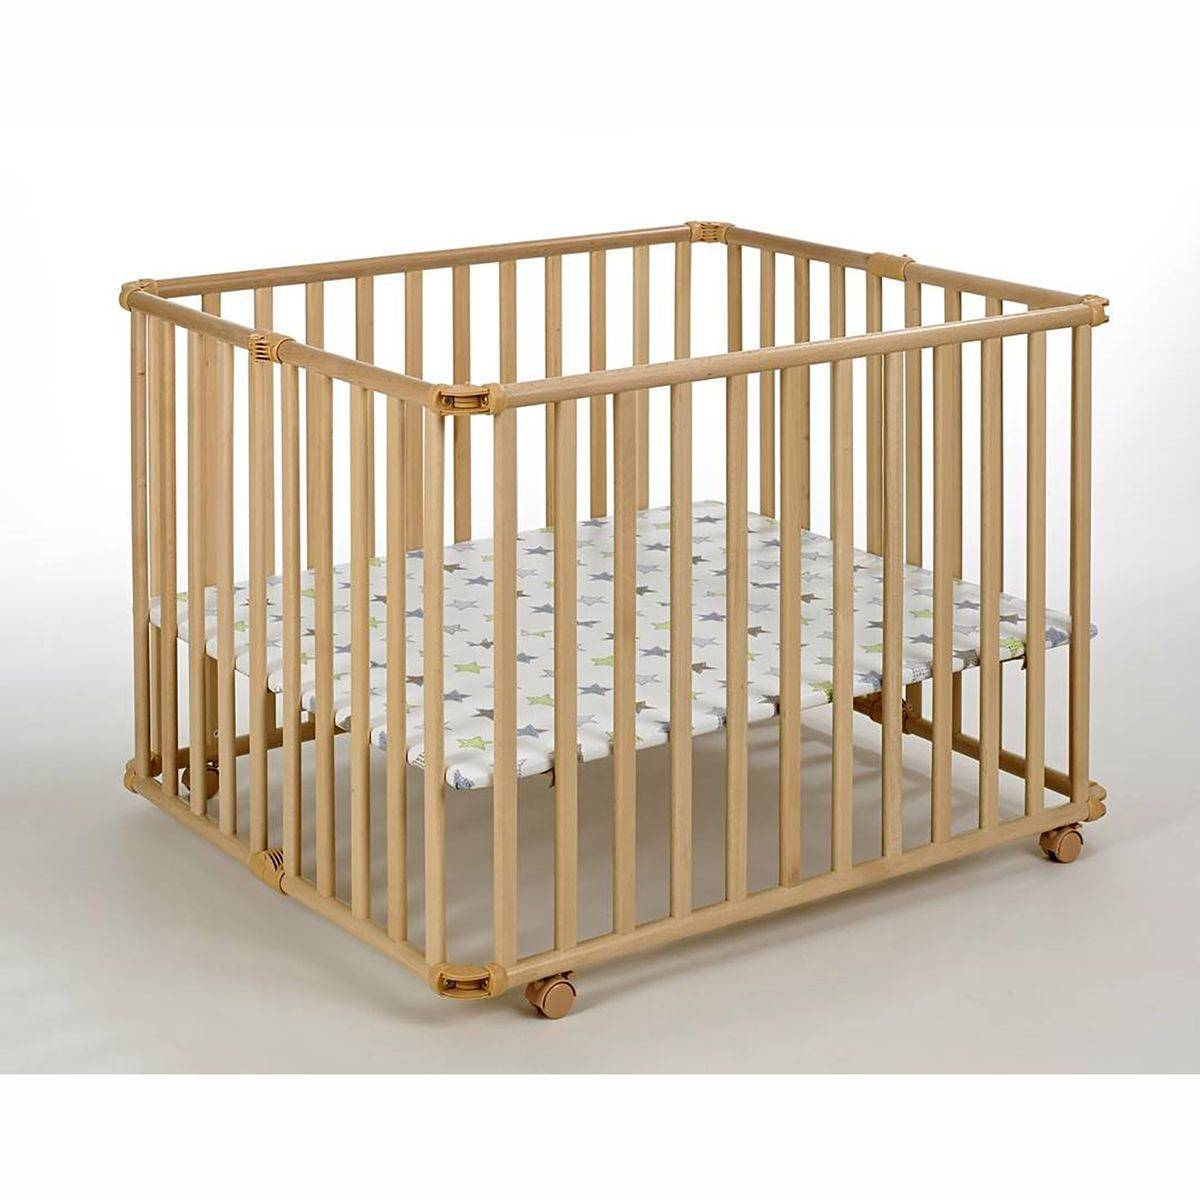 Geuther PARC BEBE MODULABLE AMELI - GEUTHER